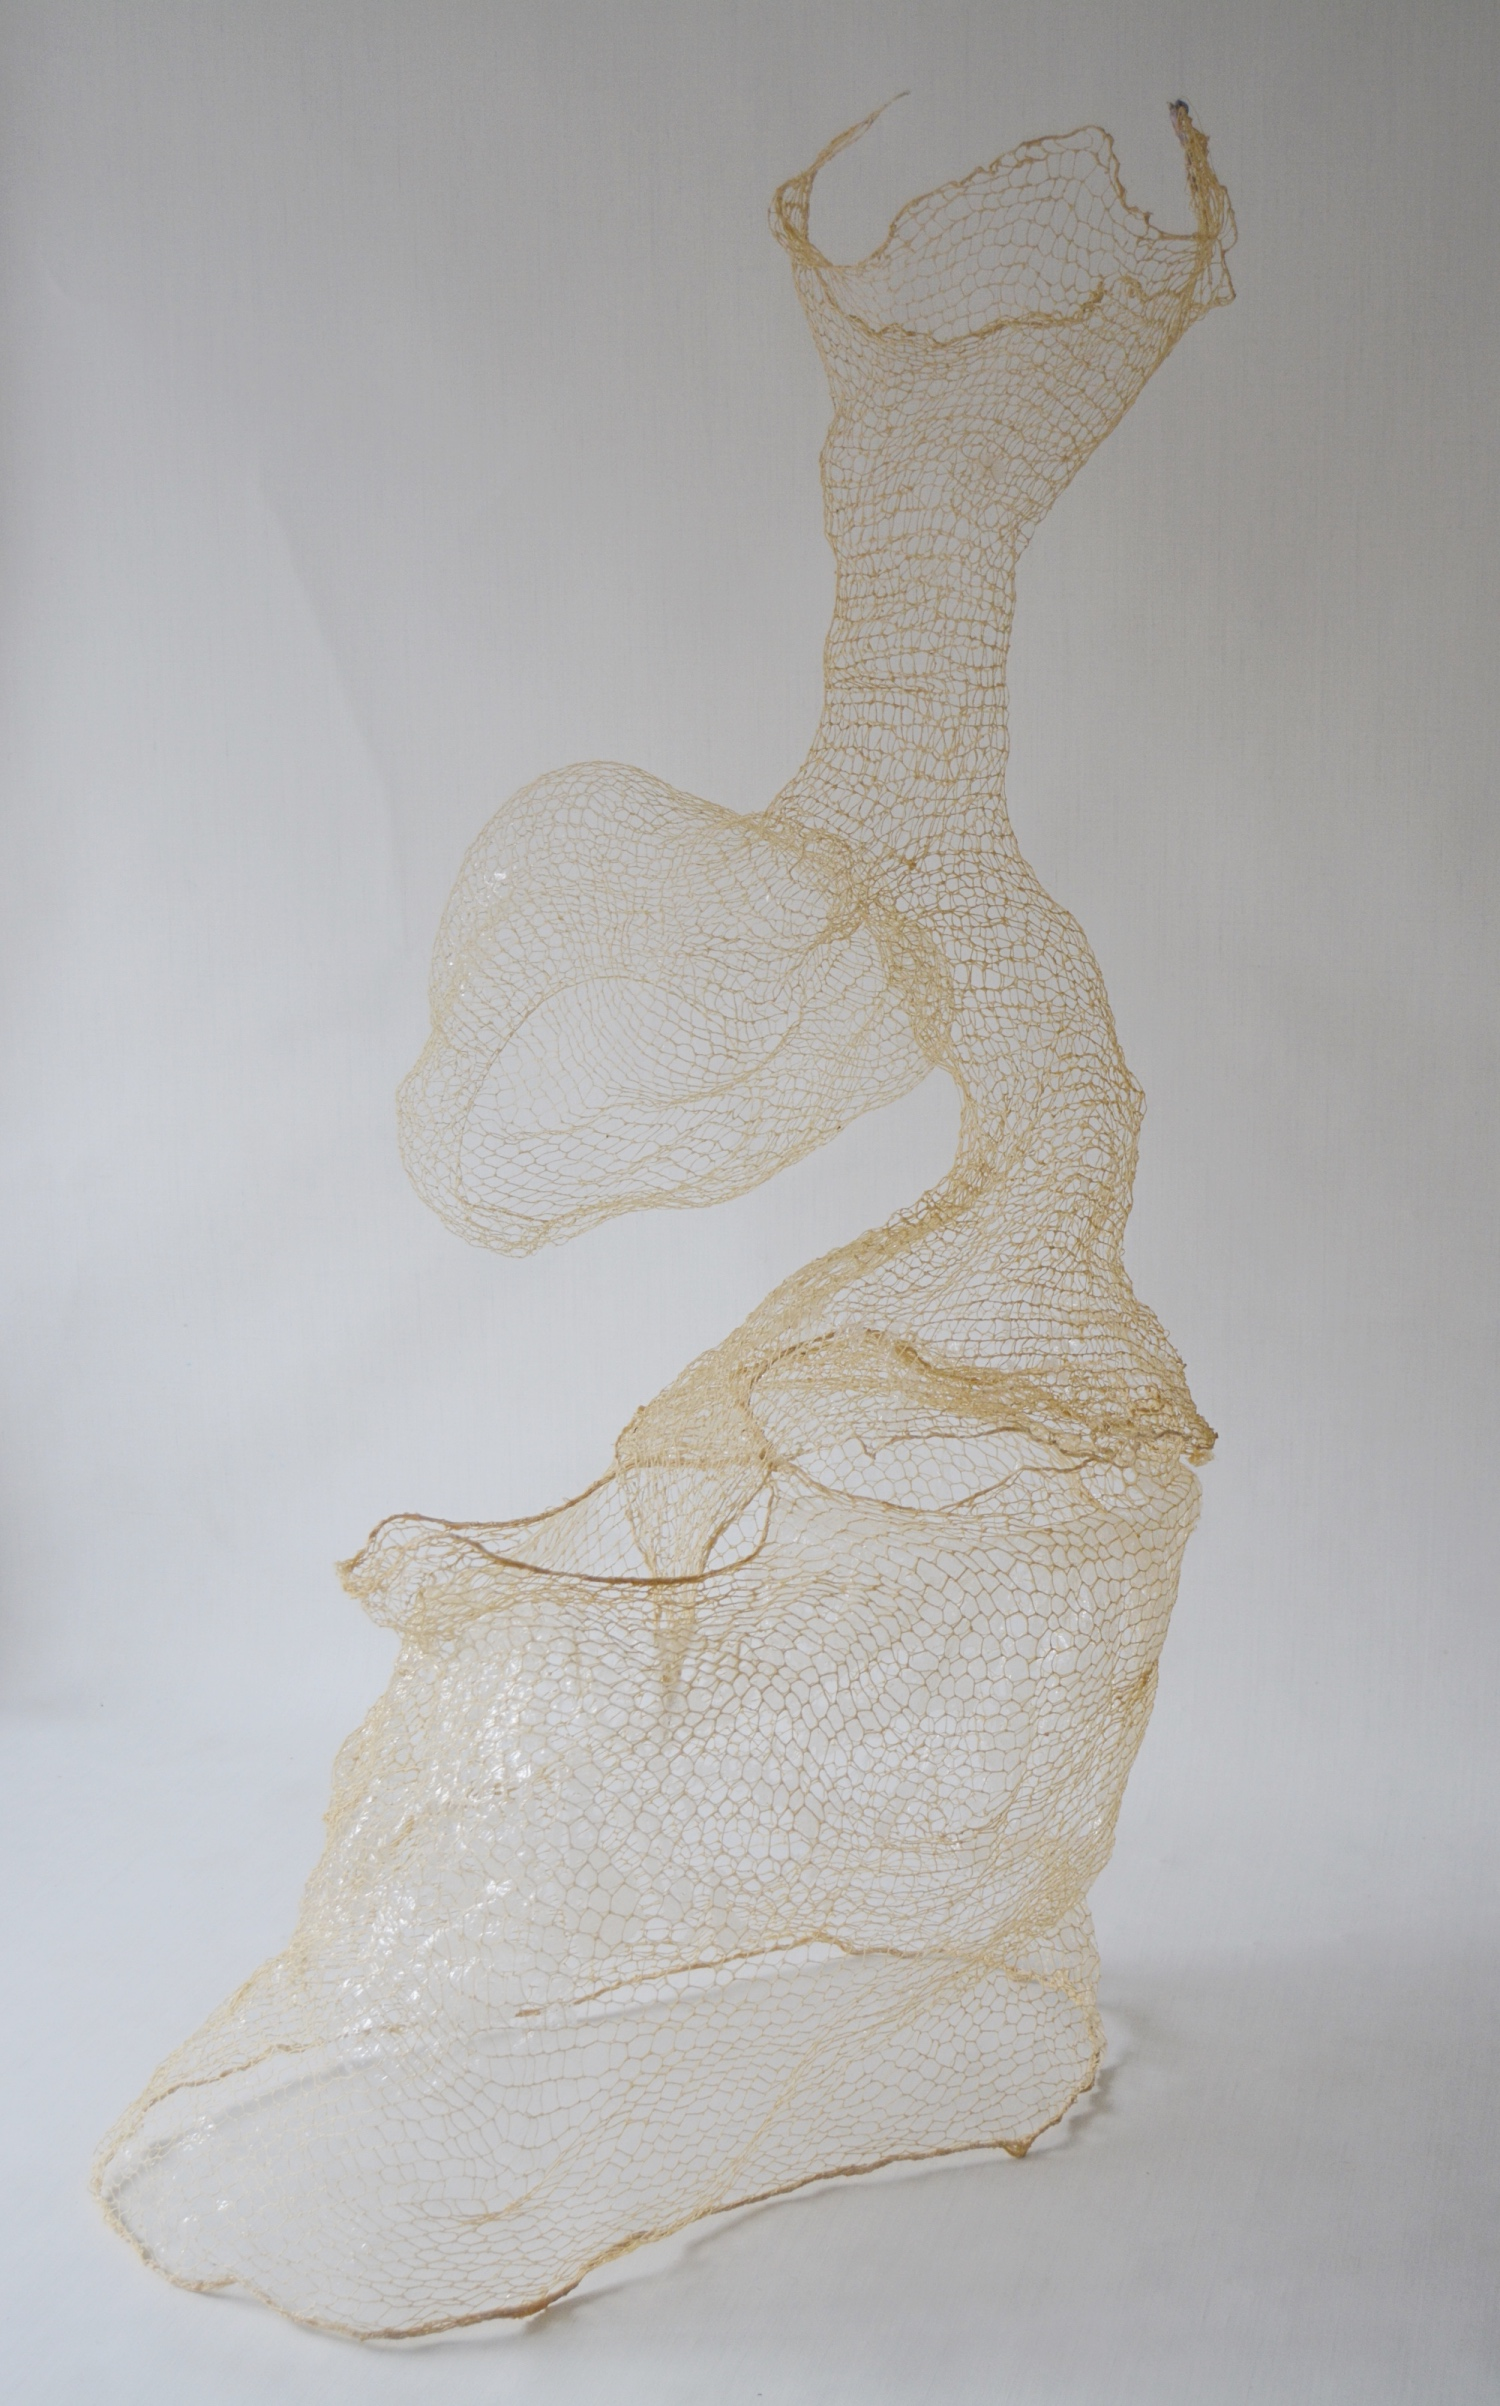 Balance in Between, 2019, Yarn and glue, approximately 61 x 35 x 35 inches, $400